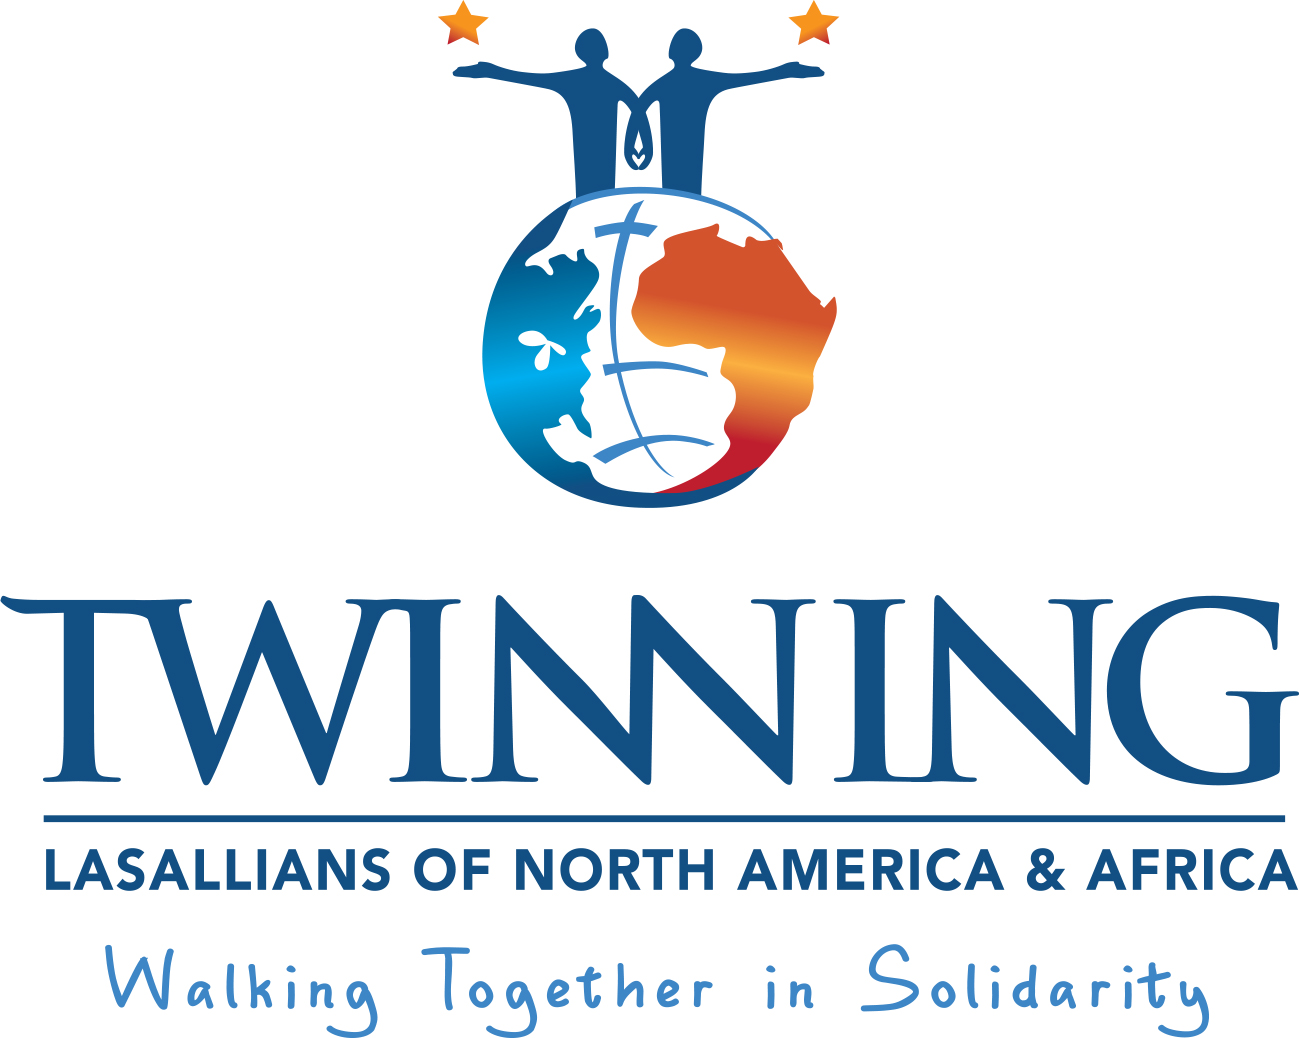 Twinning: Praying Together in Solidarity